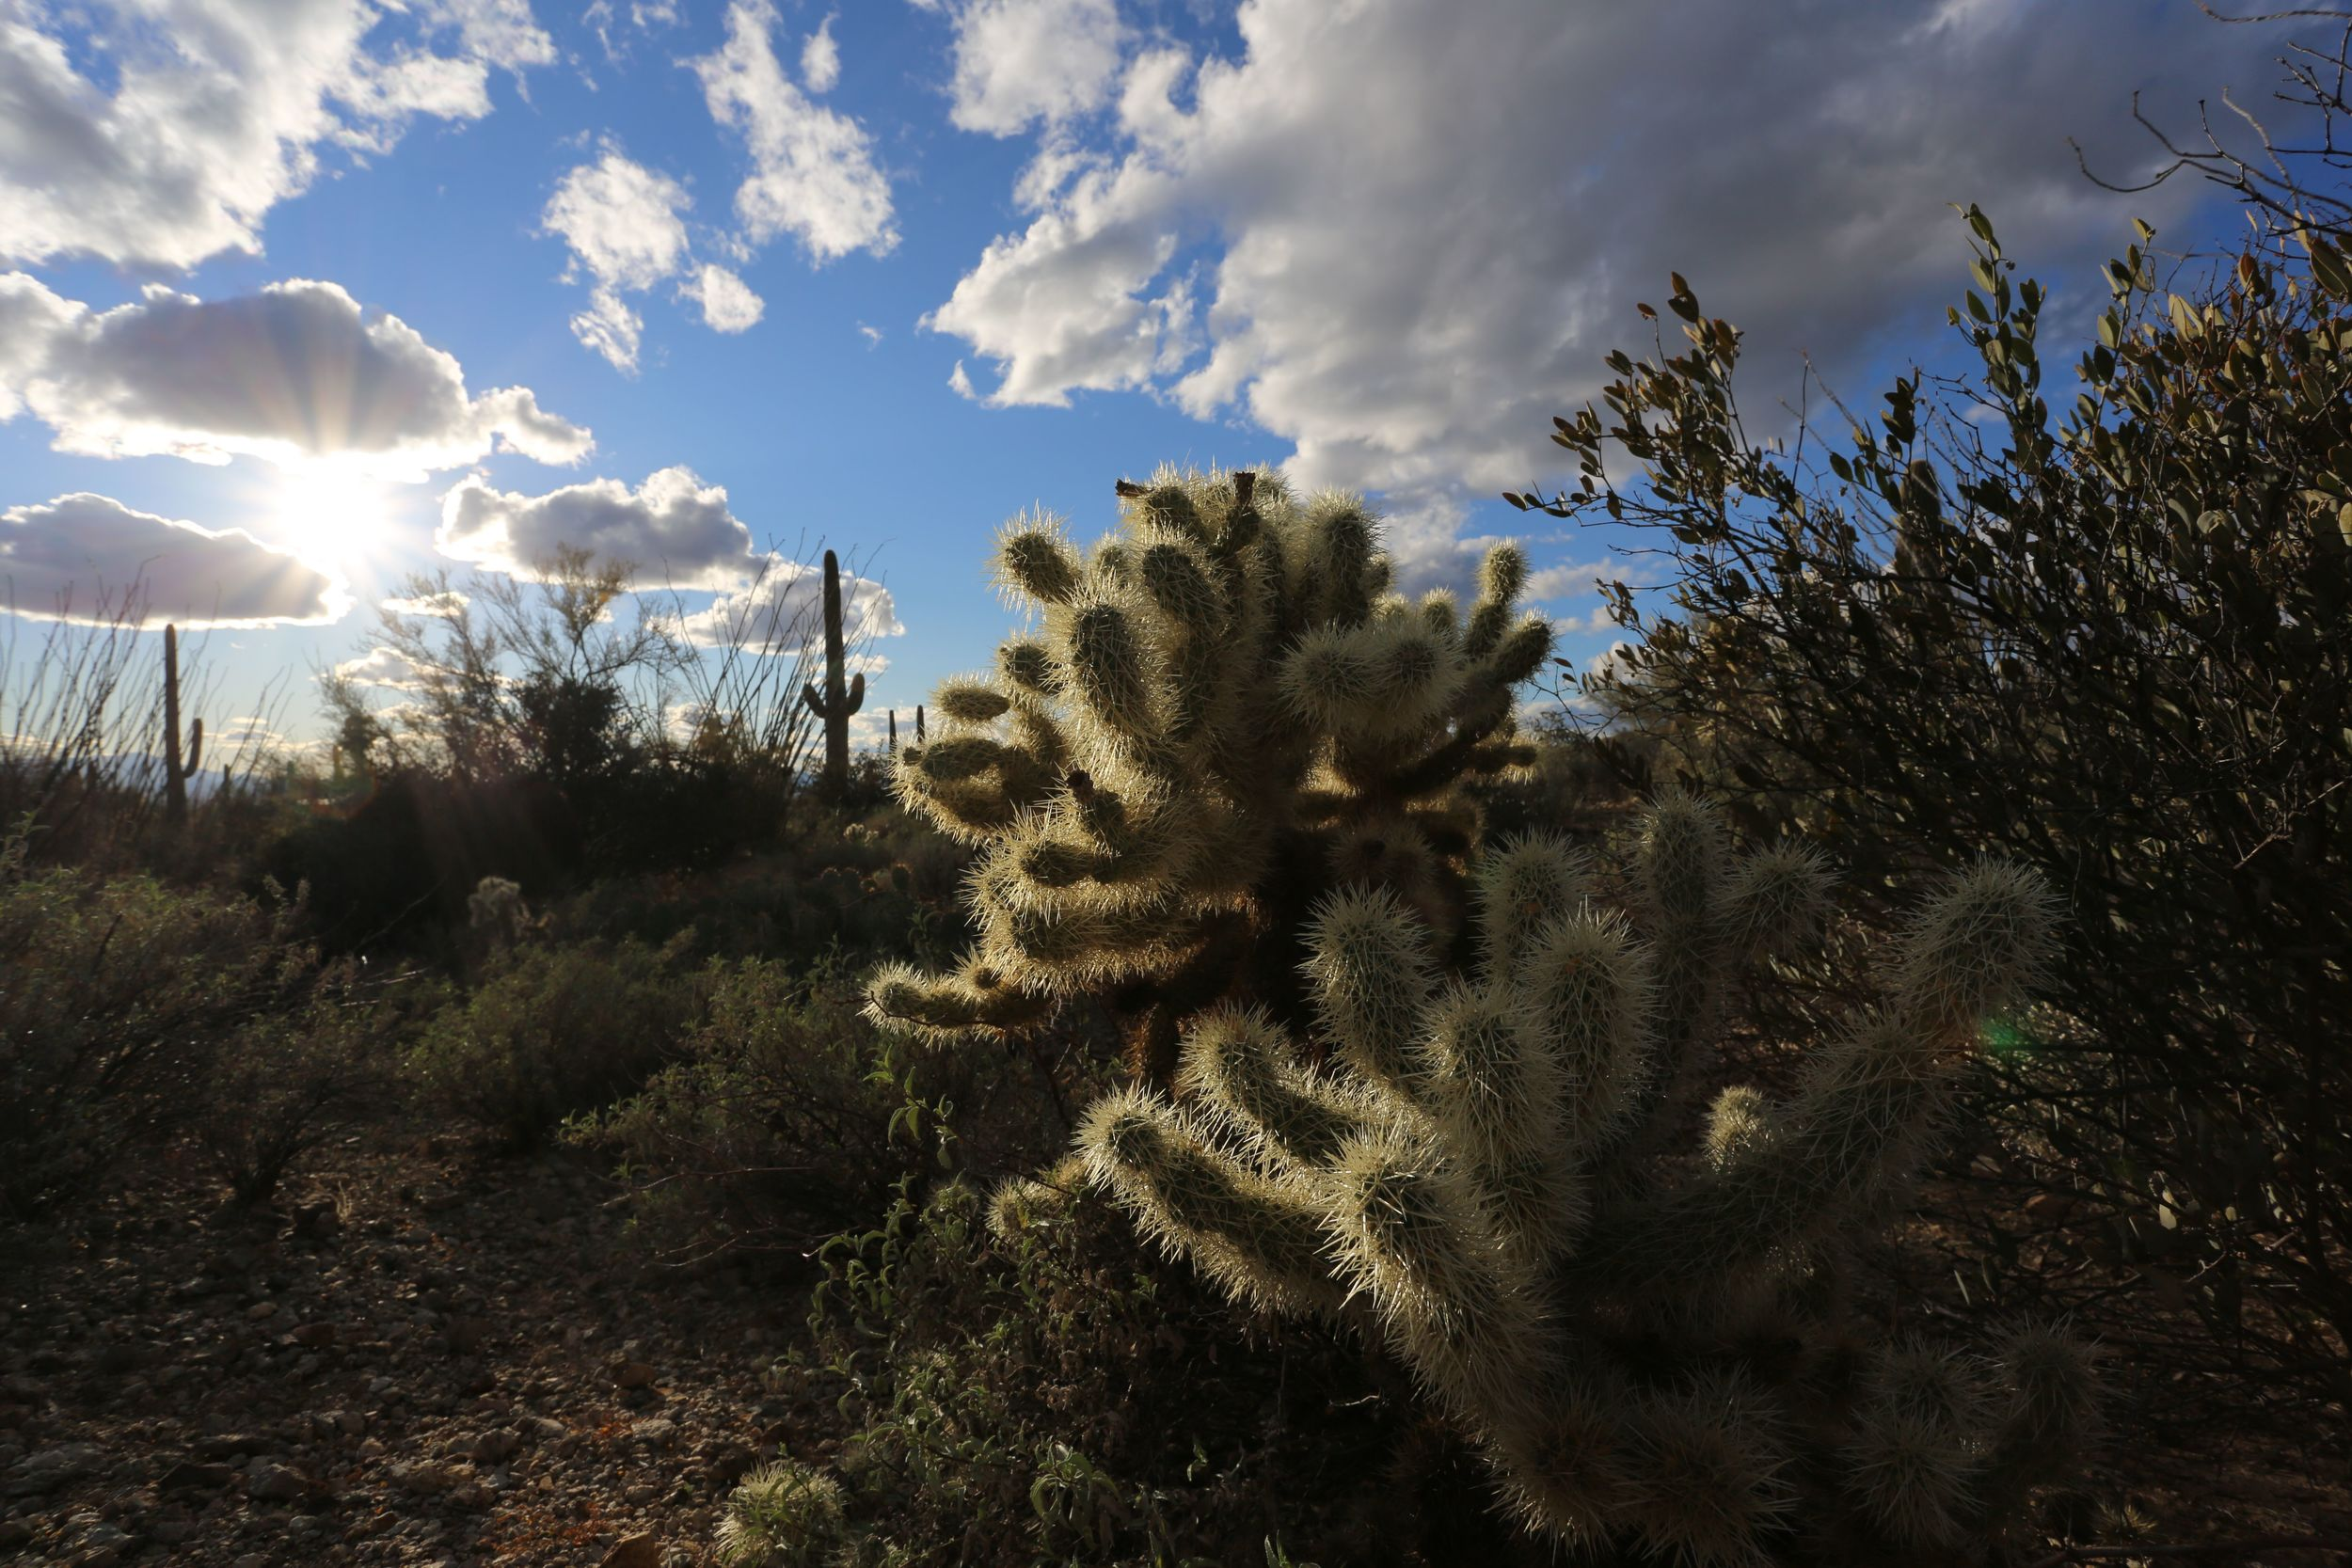 A Teddy Bear Cholla shows off its spines in the sun